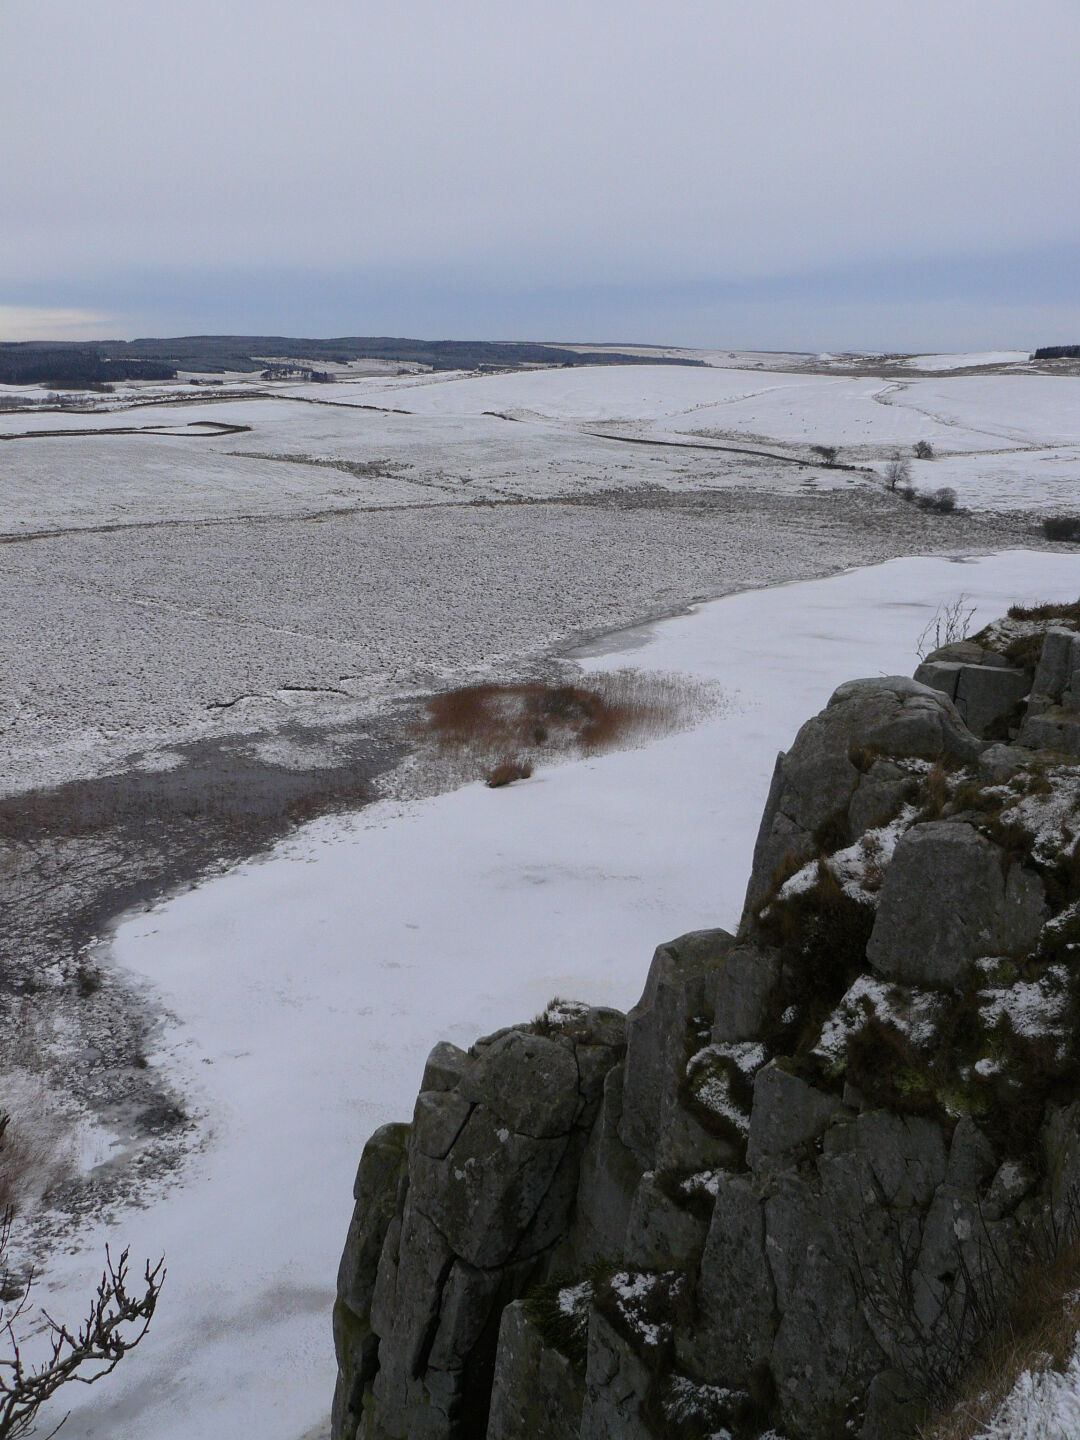 Frozen lake Crag Lough beneath the cliffs.